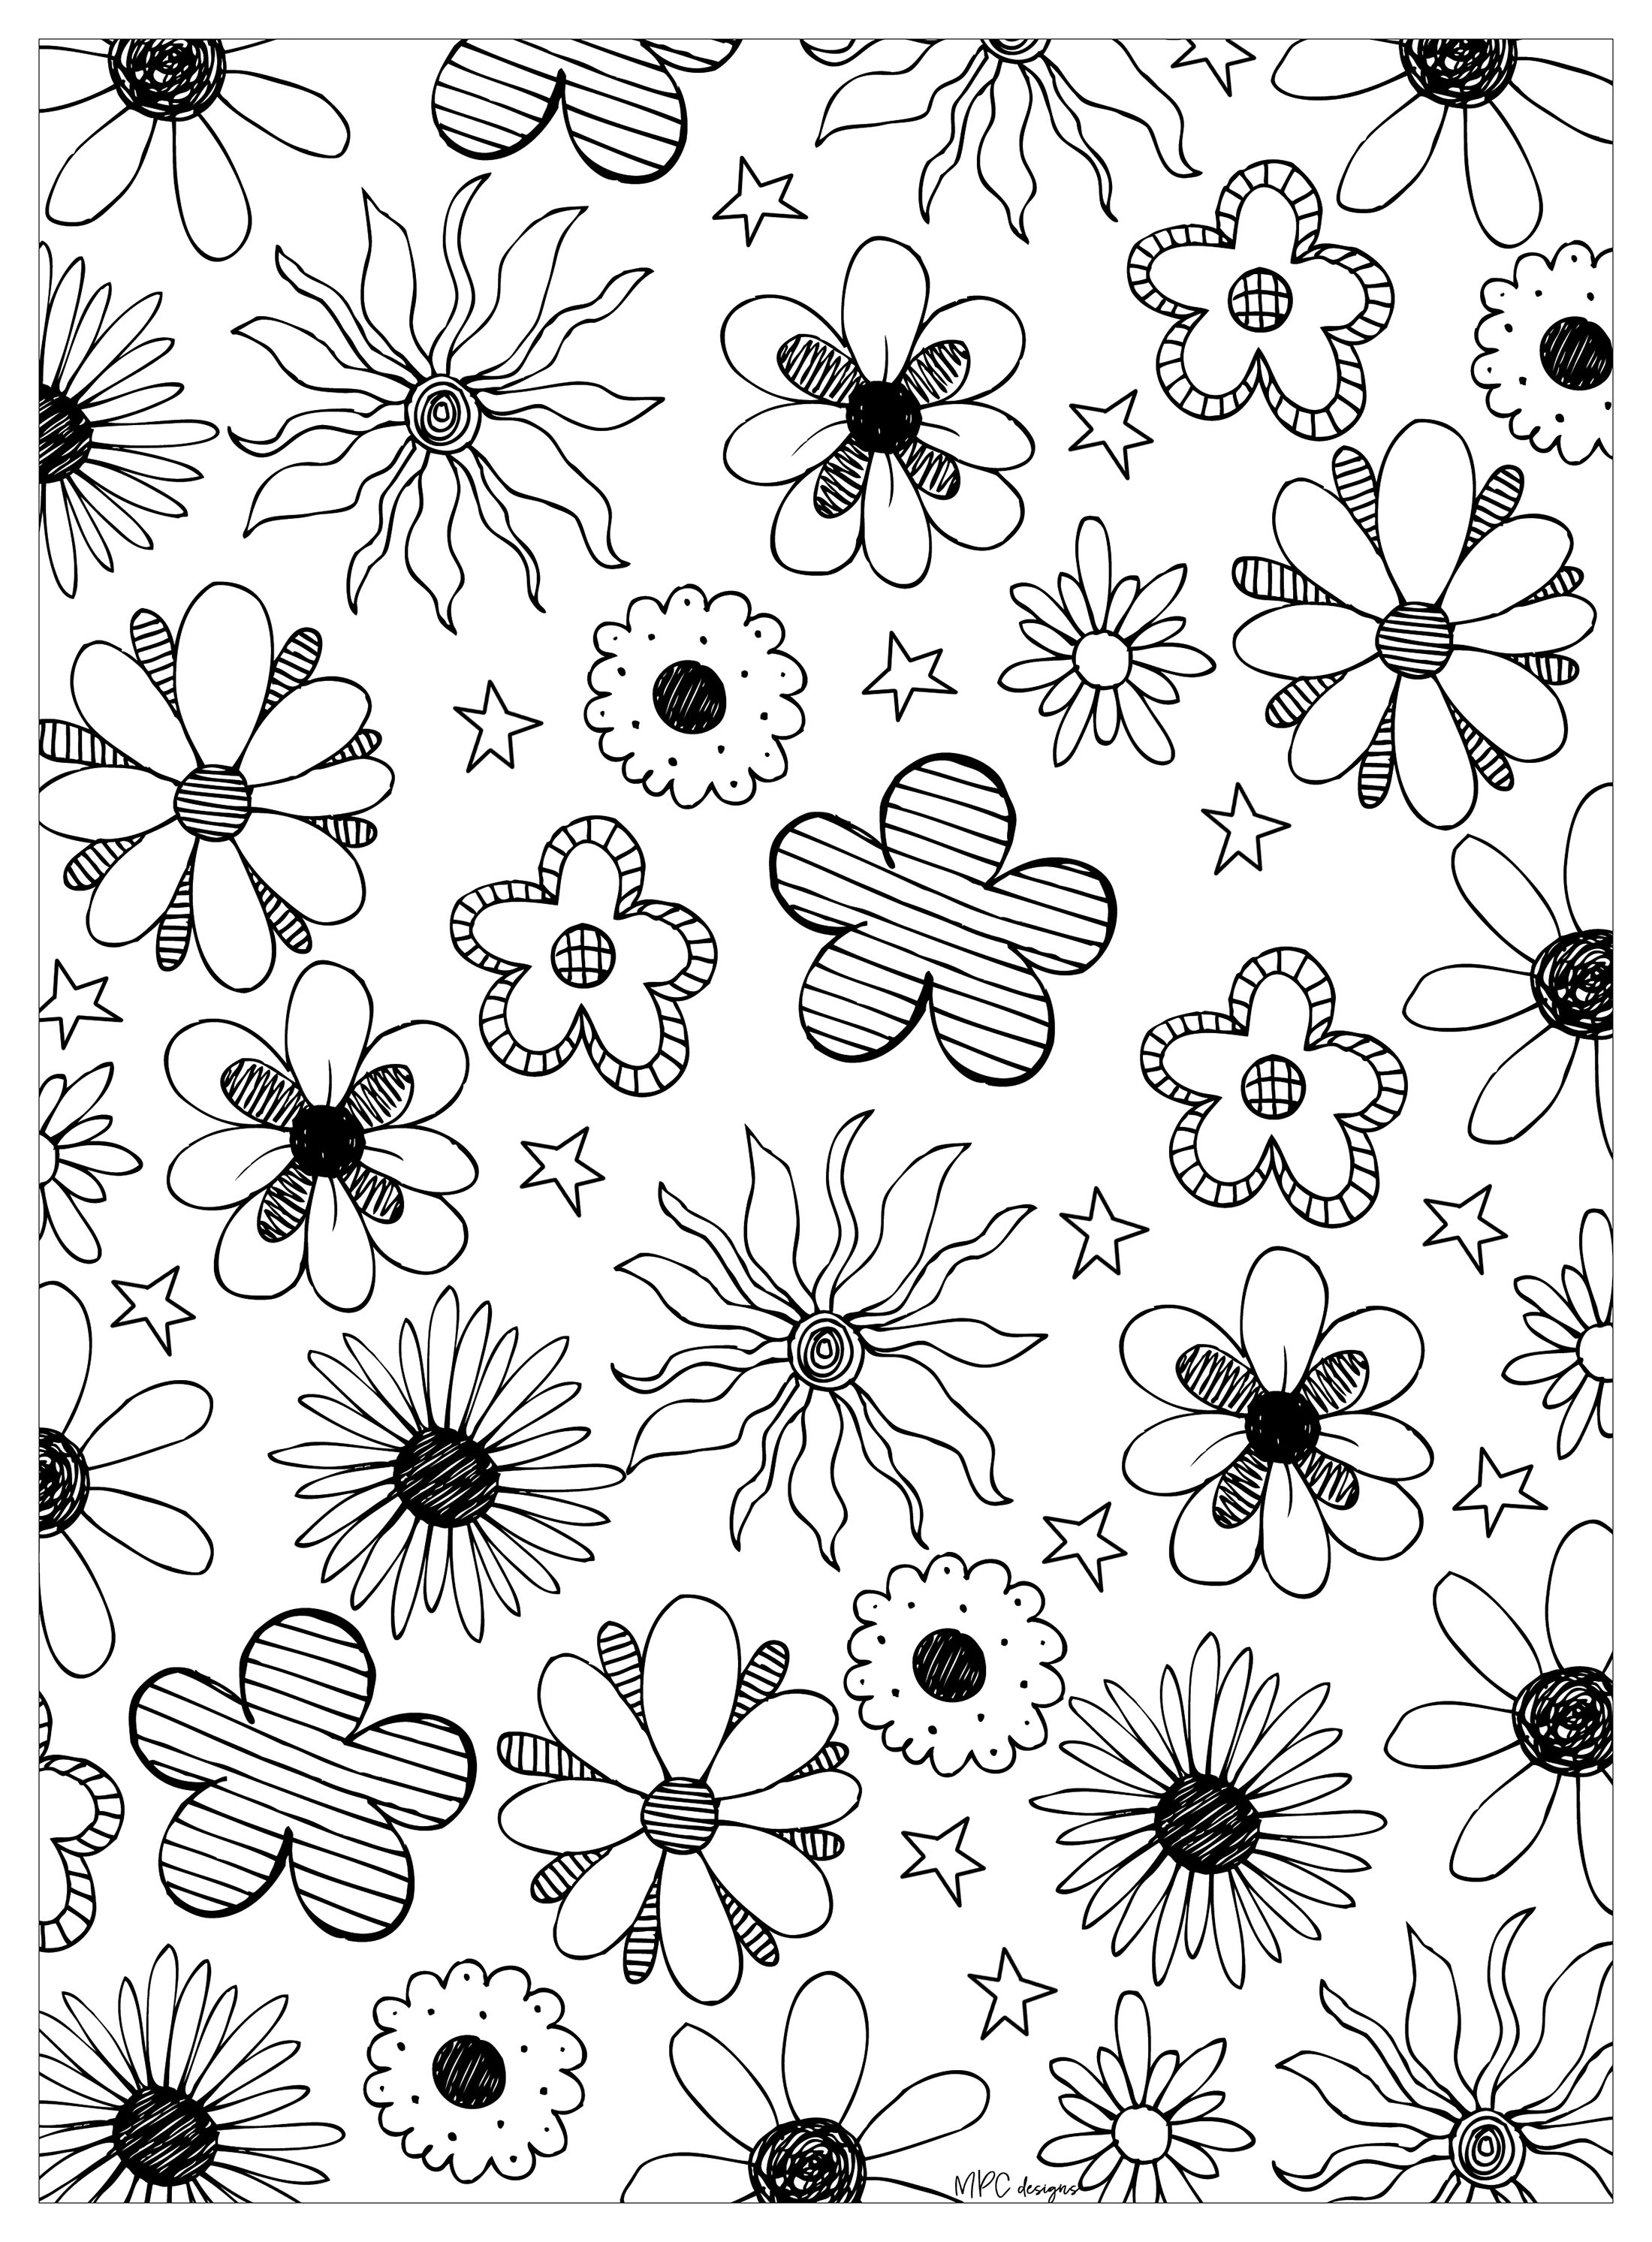 Flowers & vegetation - Coloring pages for adults | JustColor